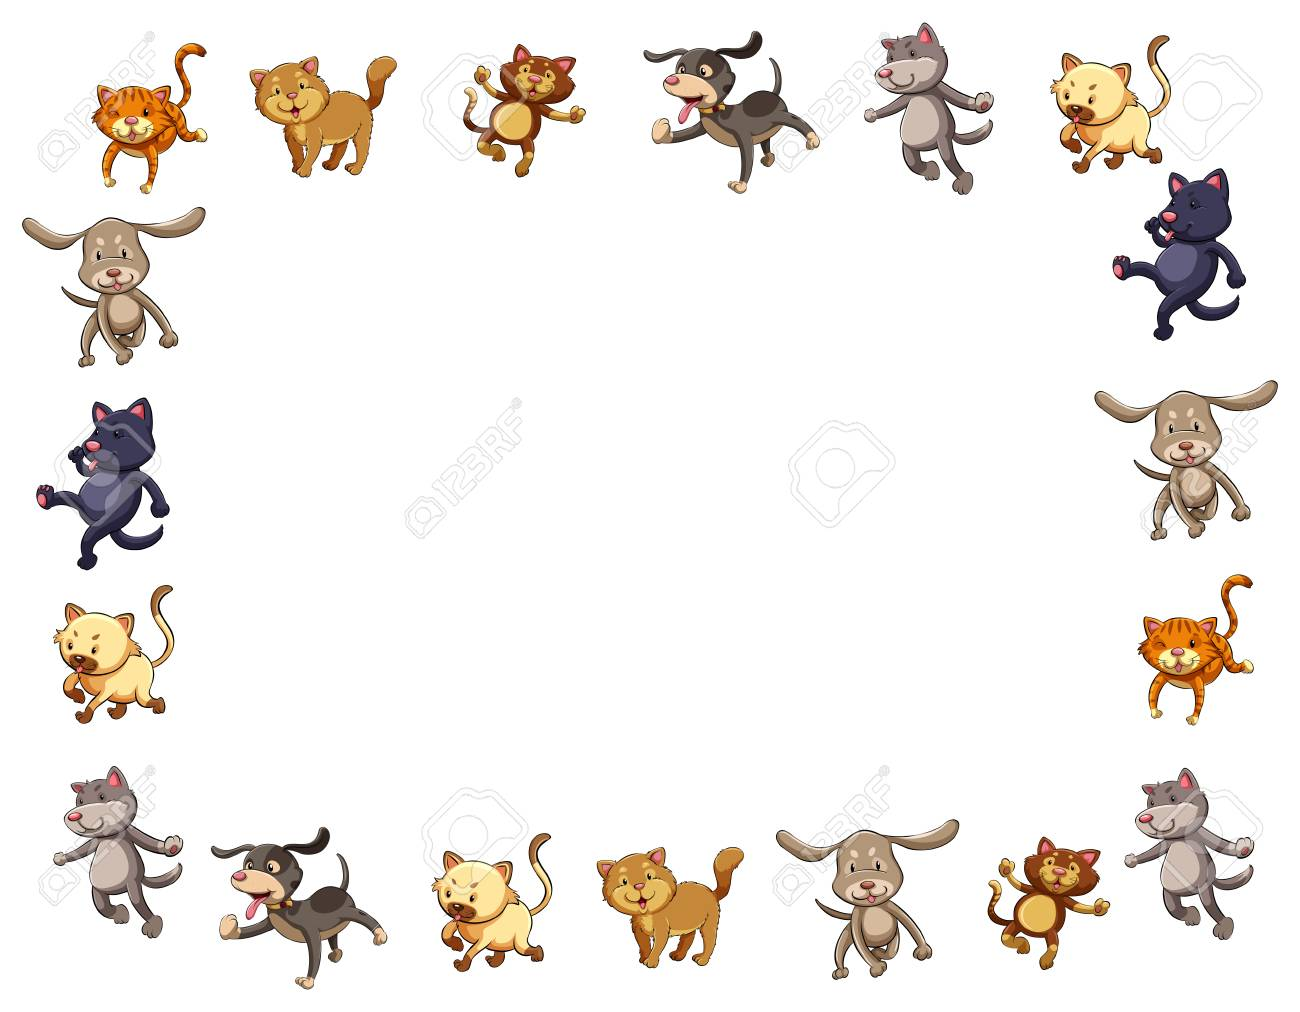 Border Template With Cute Cats And Dogs Illustration Royalty Free Cliparts Vectors And Stock Illustration Image 91243030